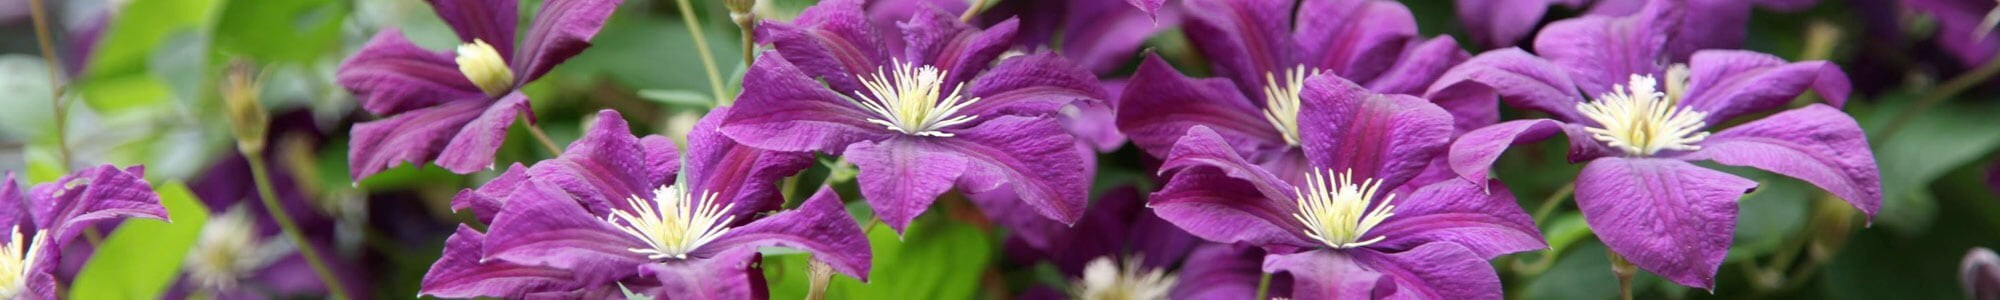 Scented plants for every season